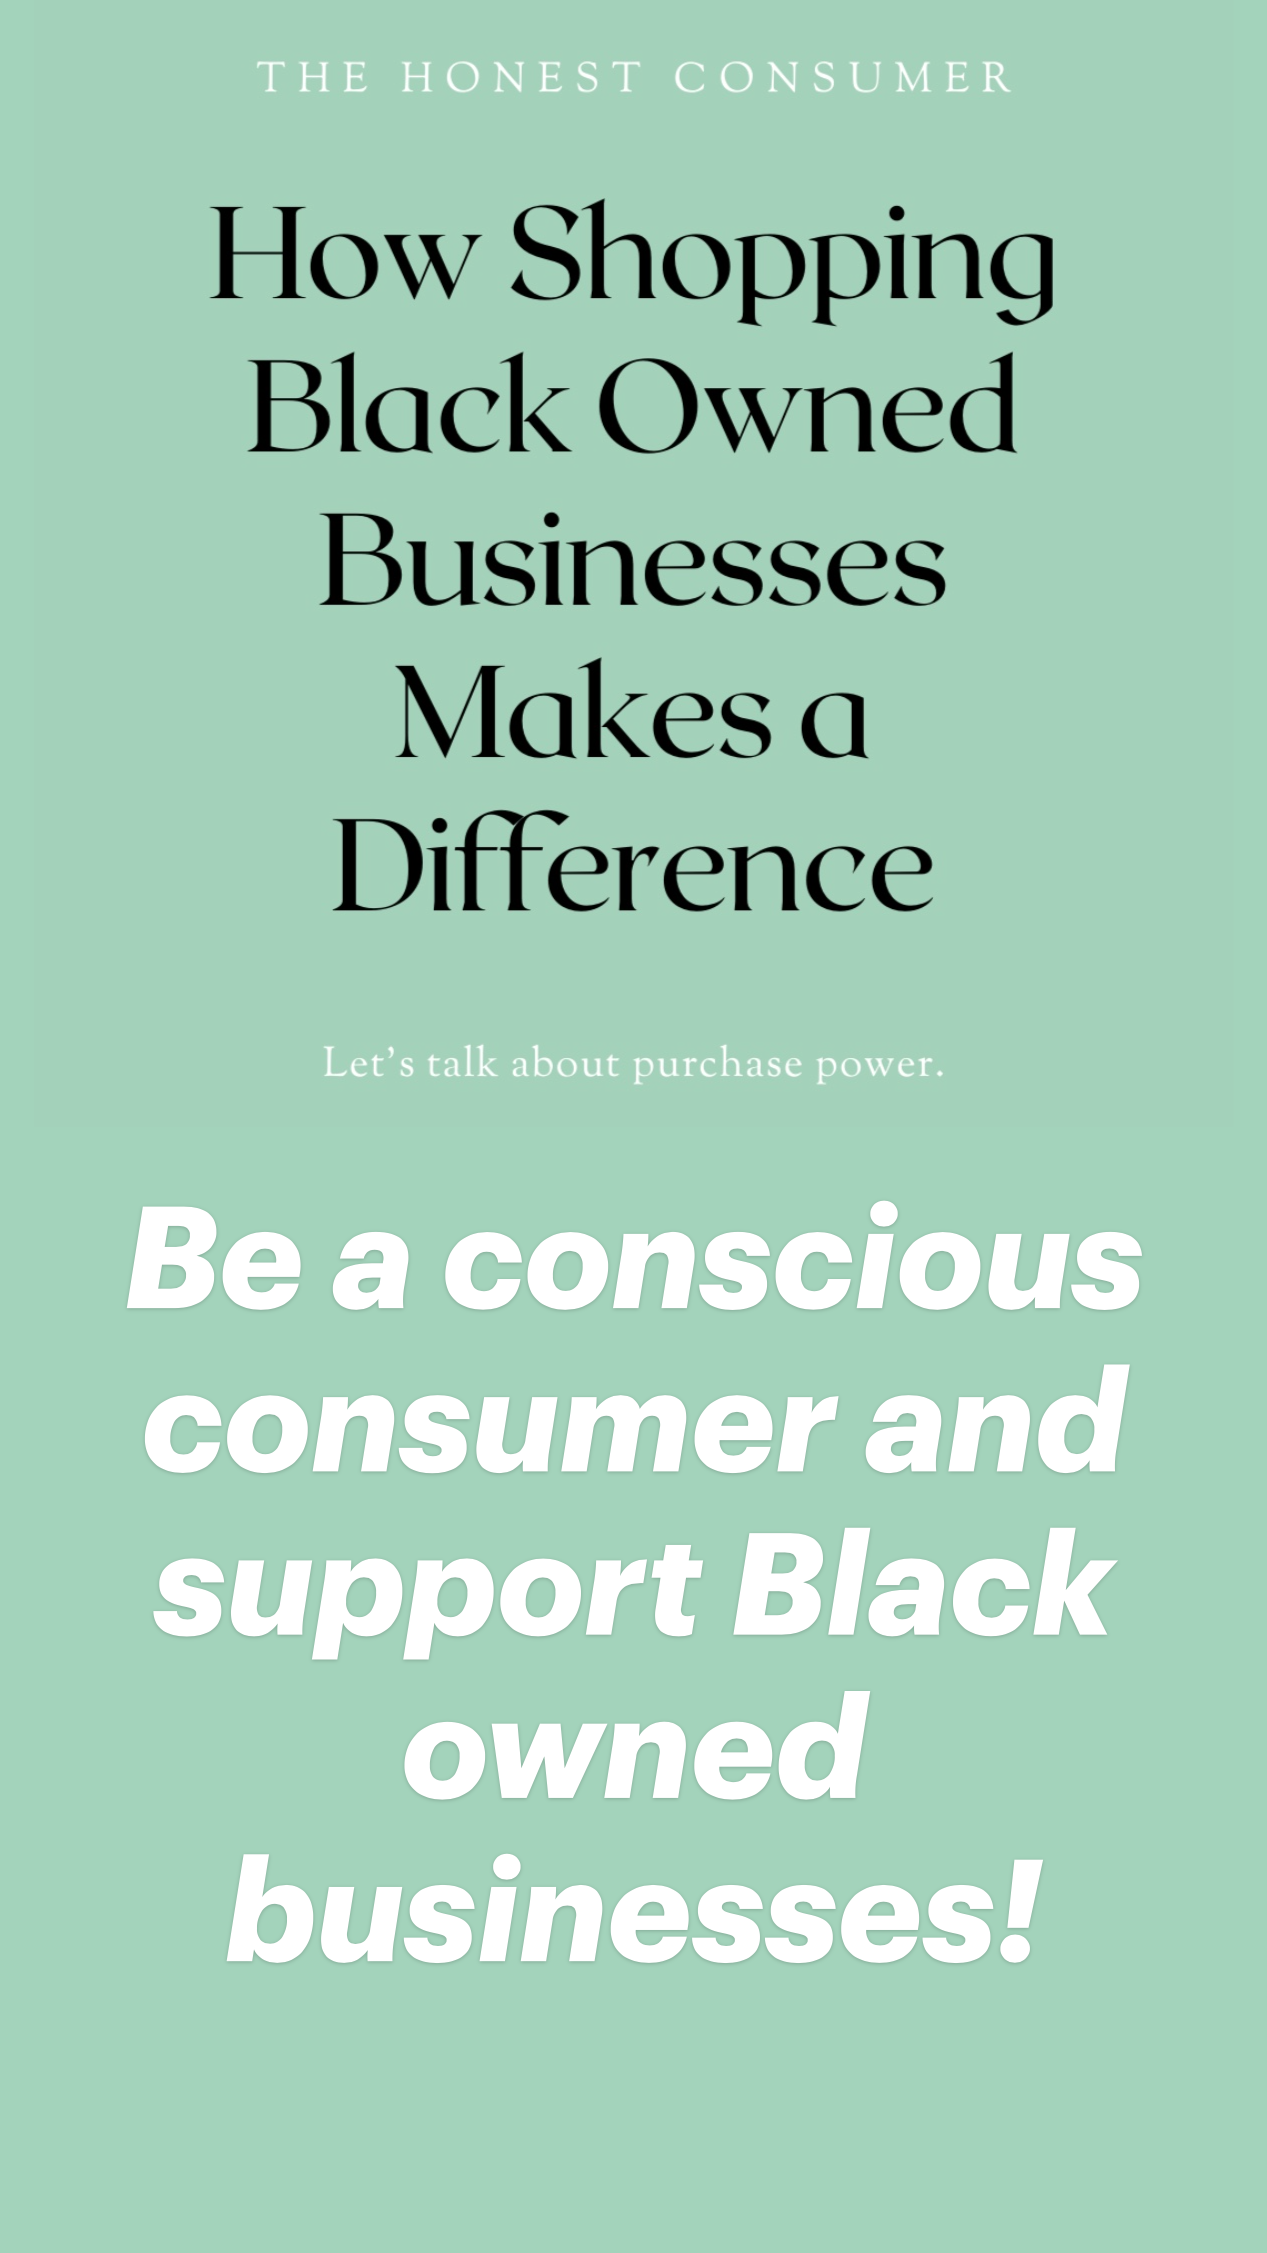 Shop Black Owned Businesses & Make a Difference